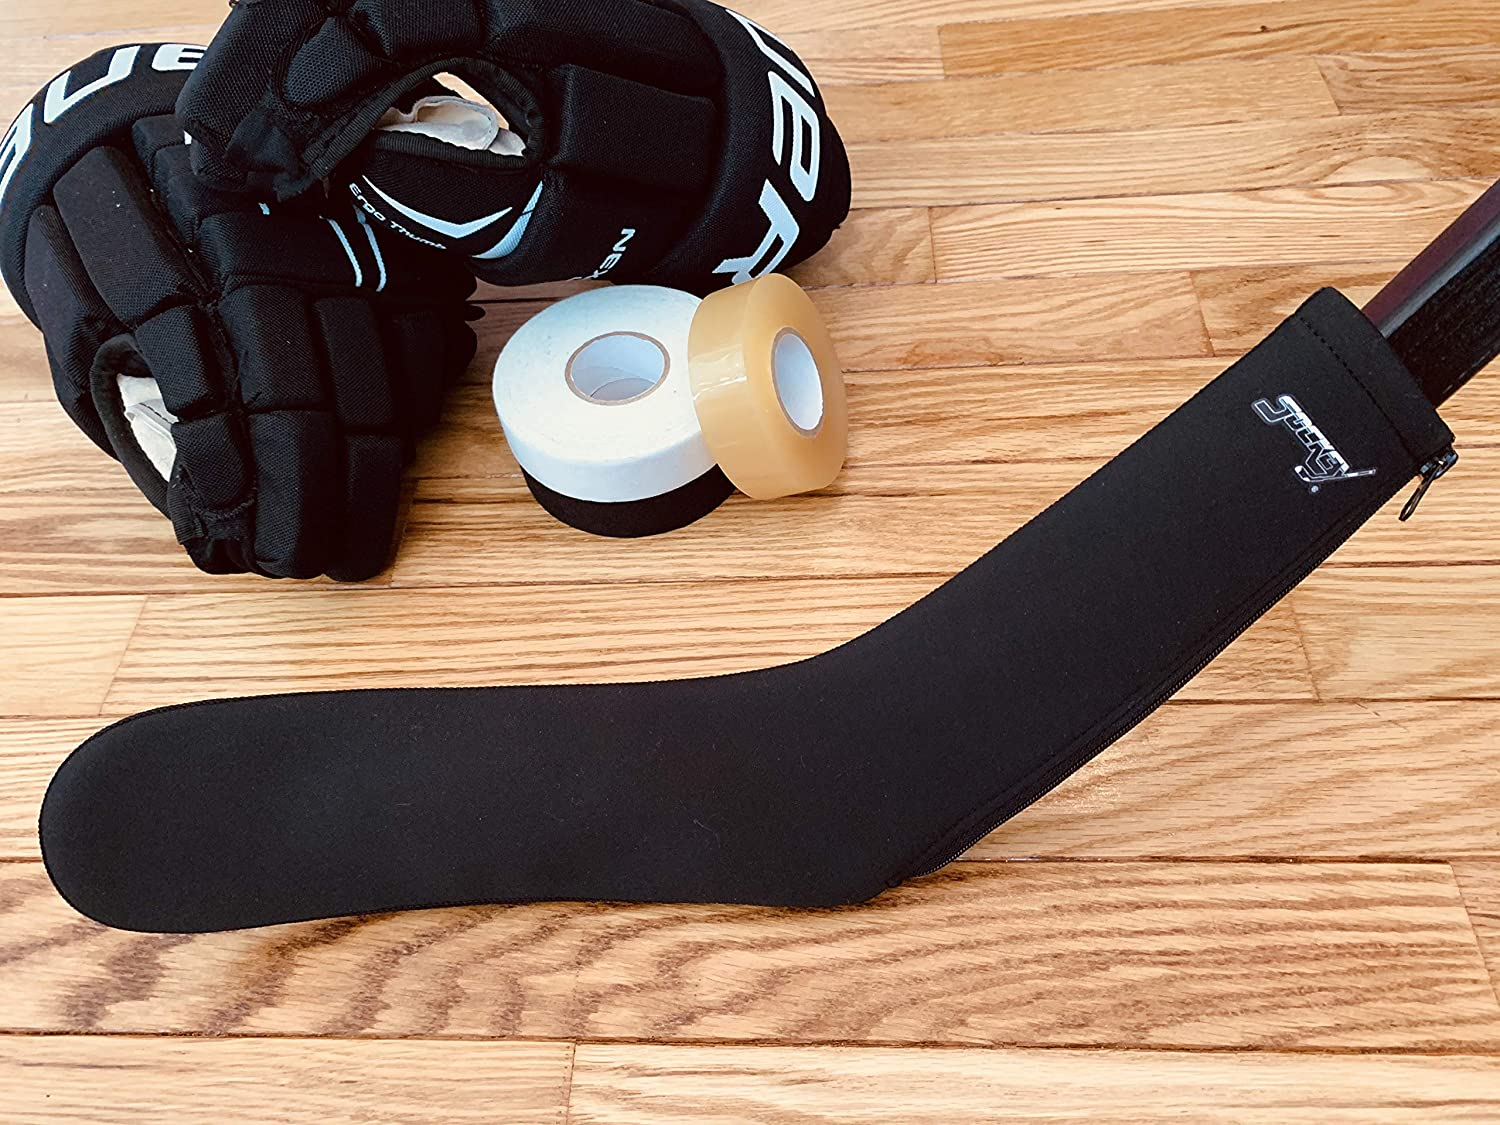 Sockey - Hockey Blade Protective Cover - Keep Your Blade Safe & Secure | Stick Protector | Hockey Player | (Black Zipper) : Sports & Outdoors